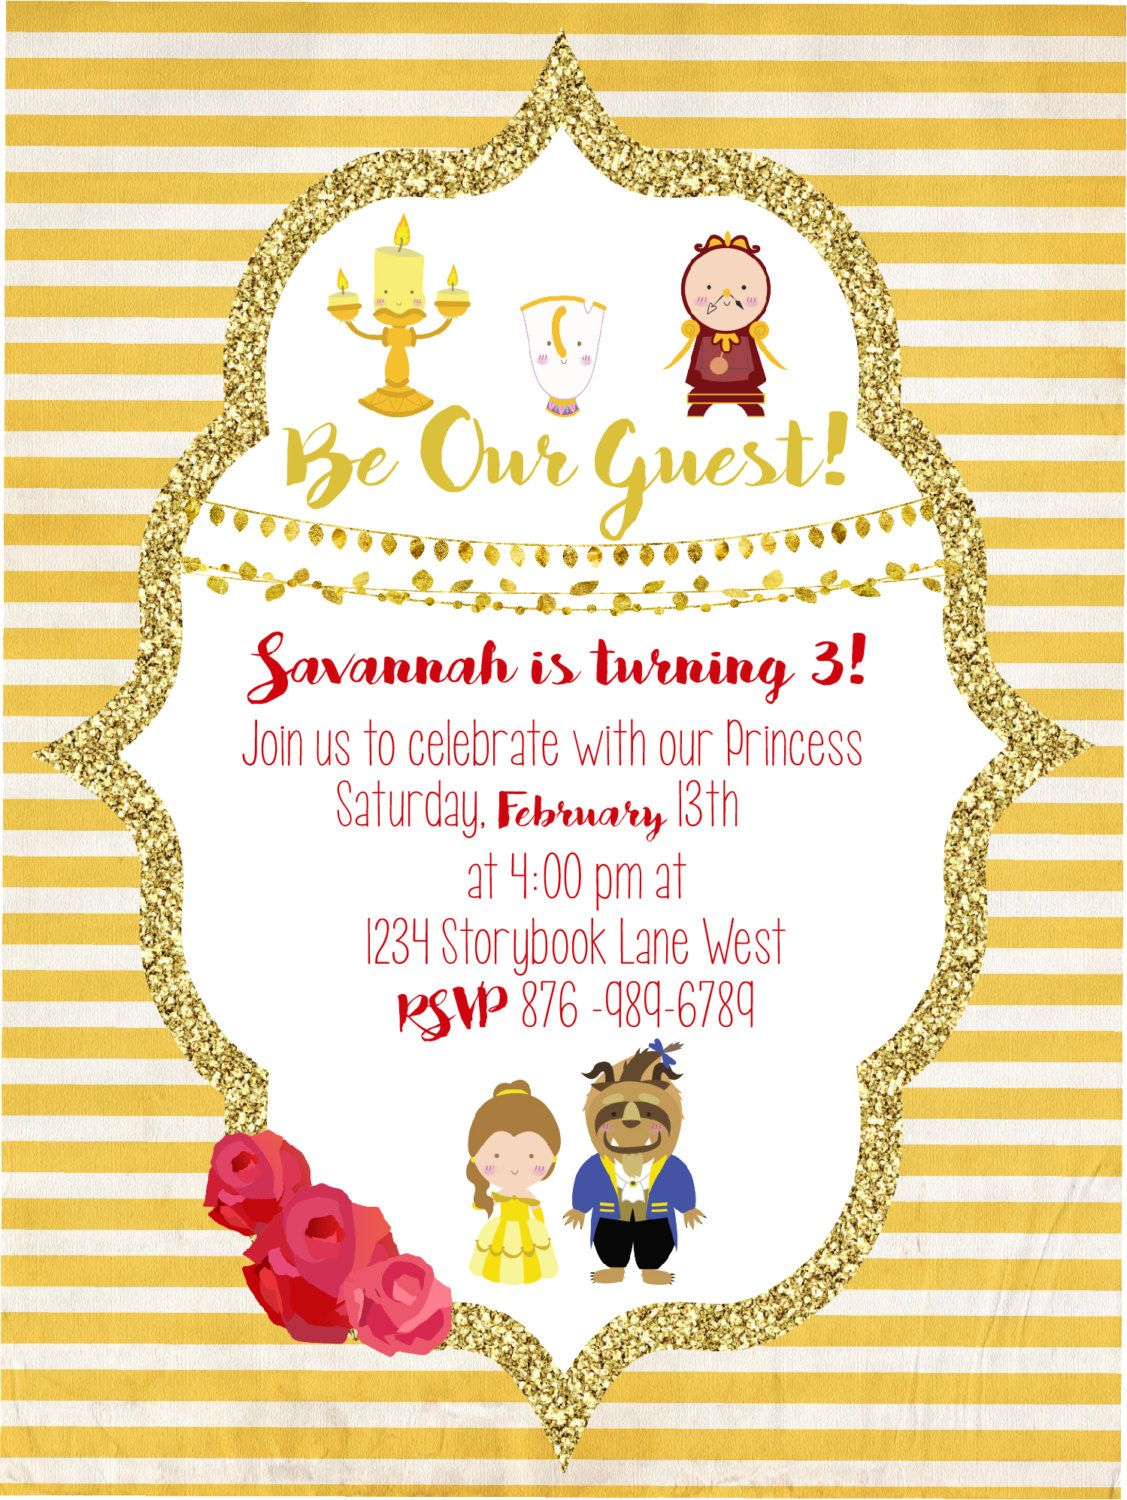 Beauty and The Beast Party Invitation | Party invitations, Beast and ...